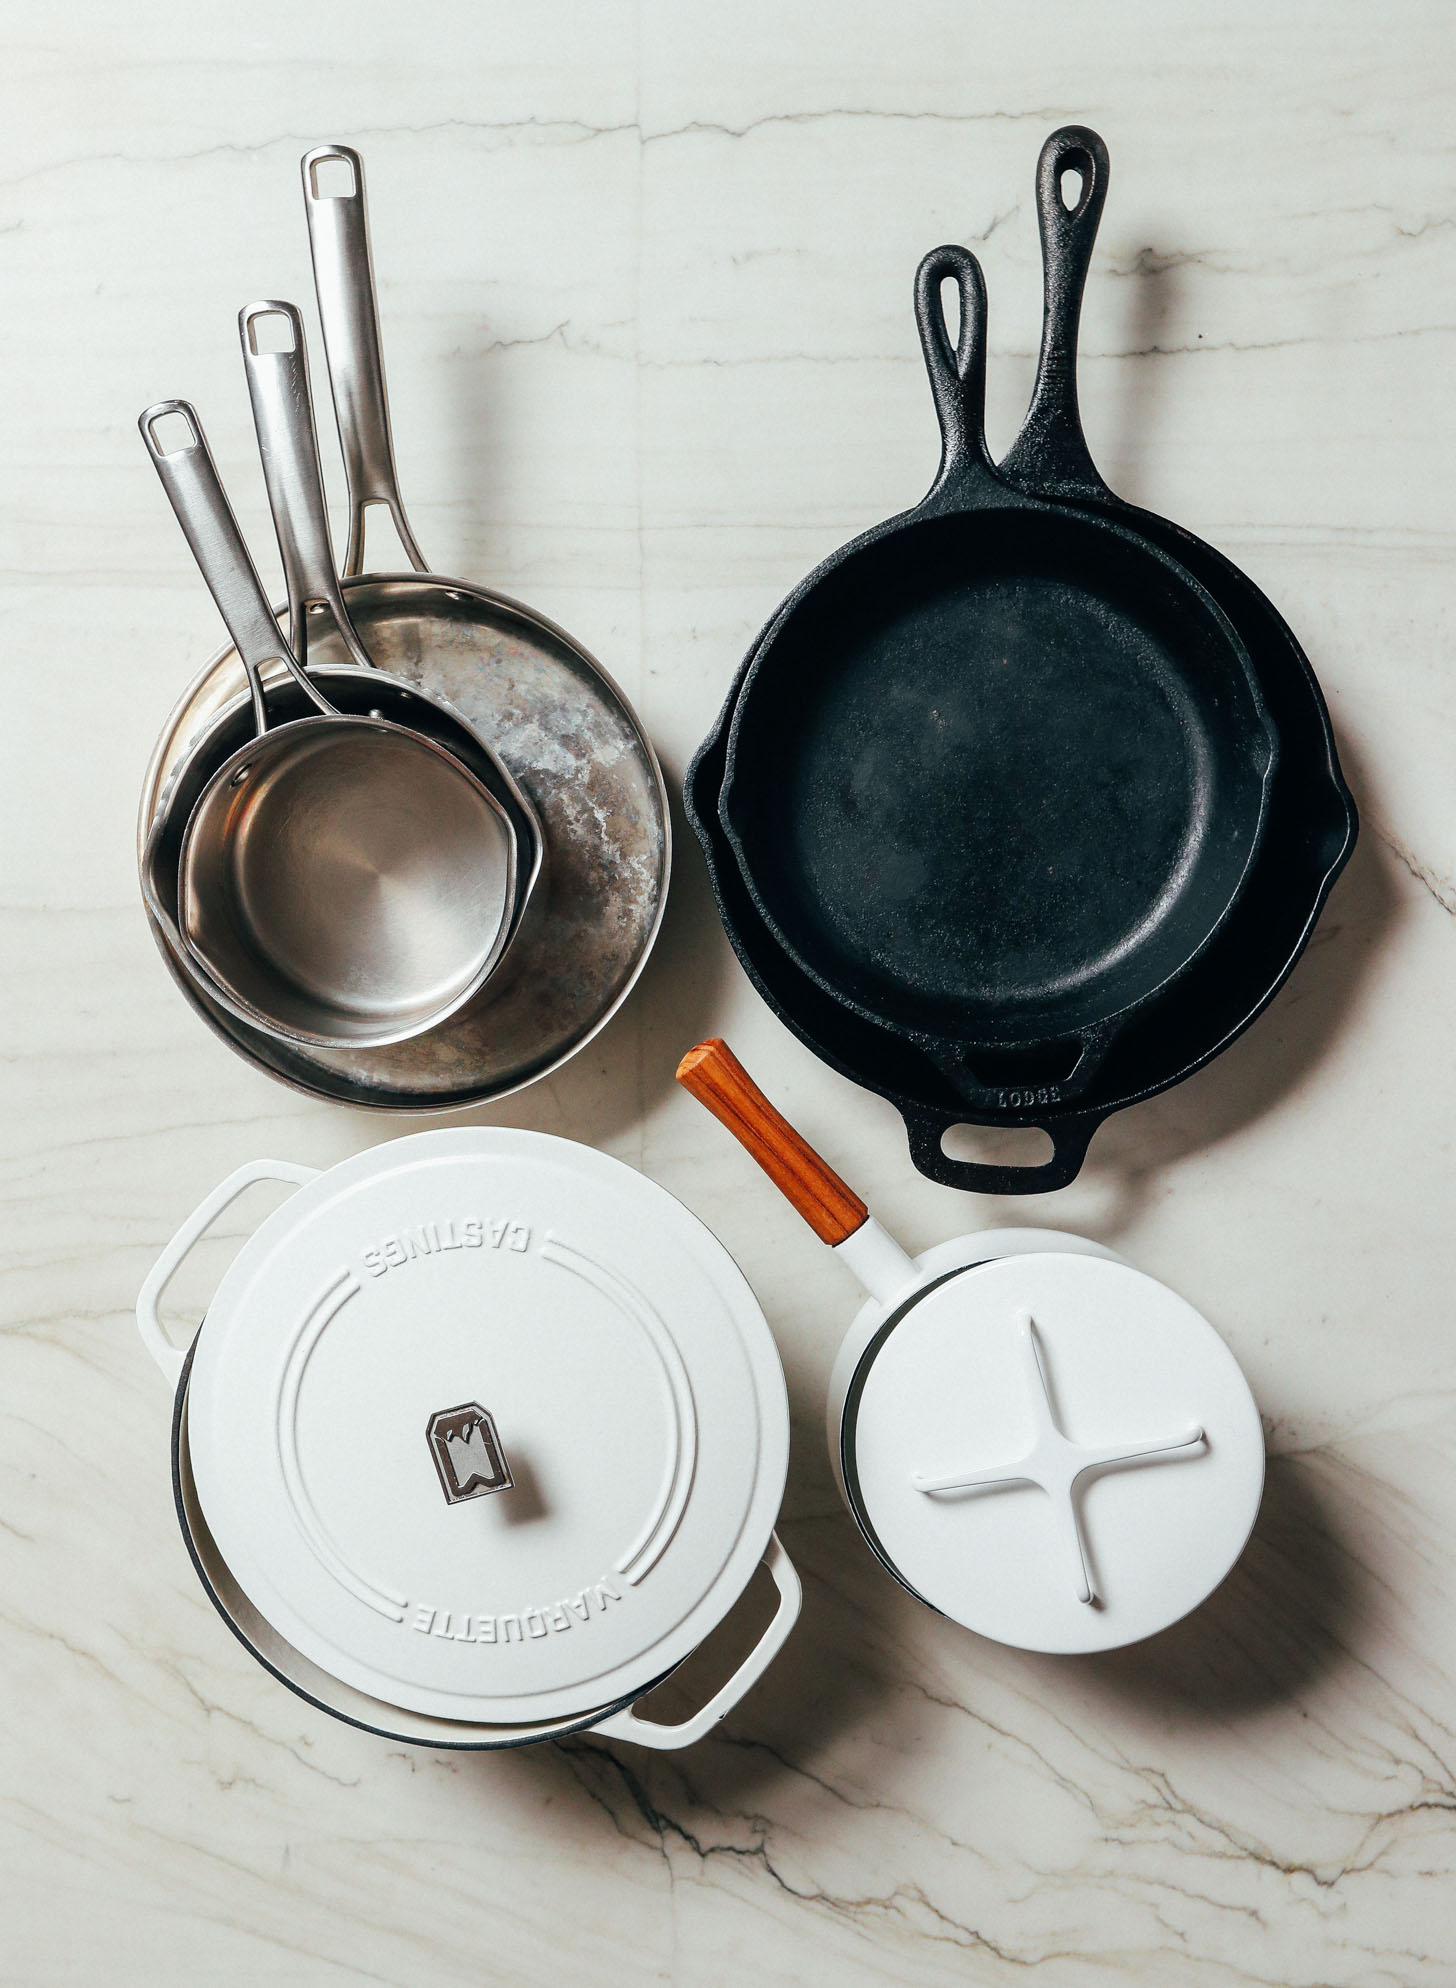 Our favorite pots and pans included in our How to Stock Your Pantry guide